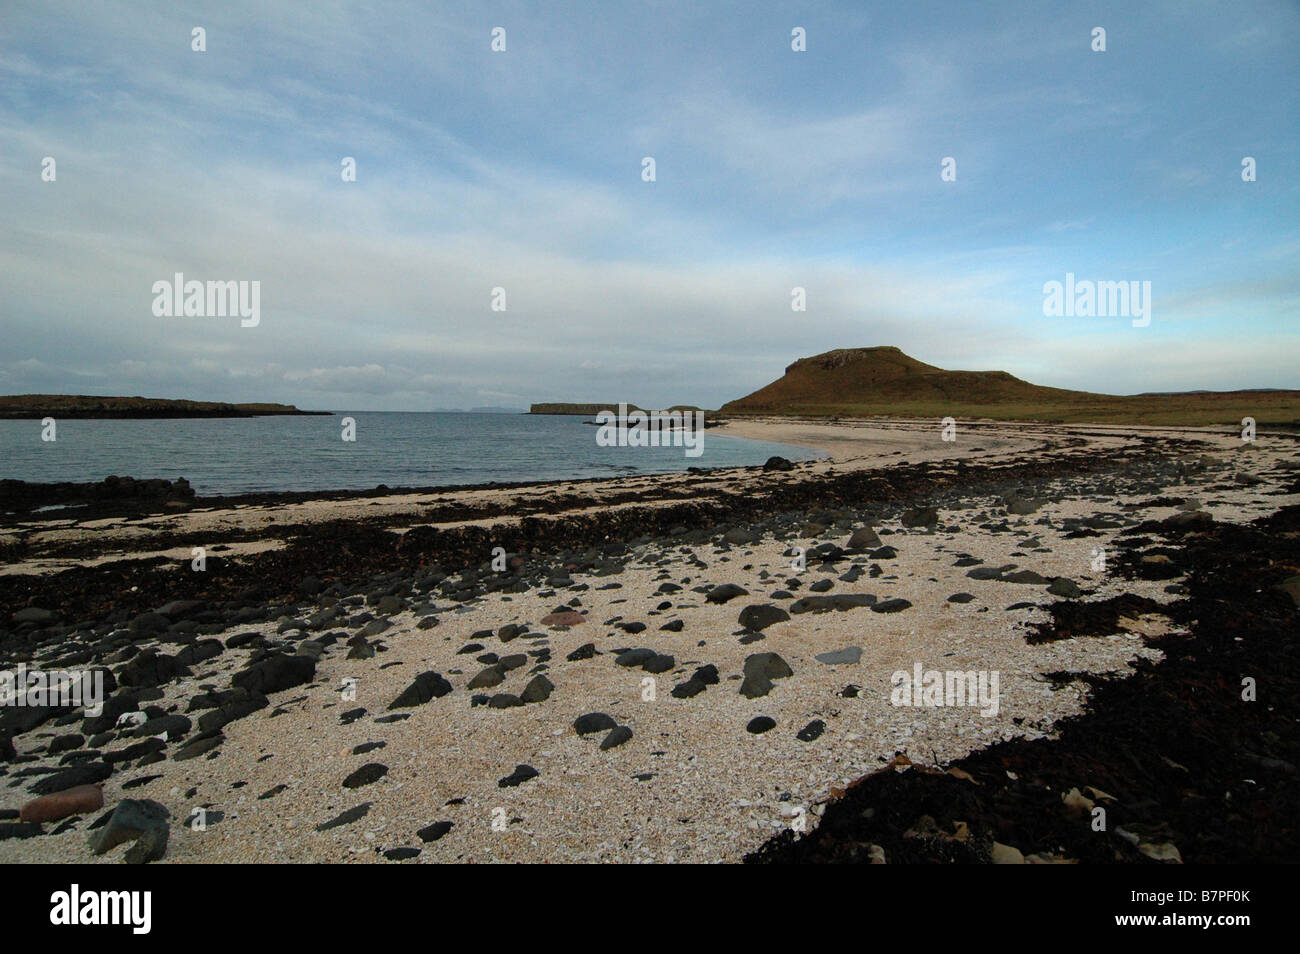 Skye's undiscovered treasures, the Coral Beach is located at the north west tip of the Dunvegan peninsula - Stock Image